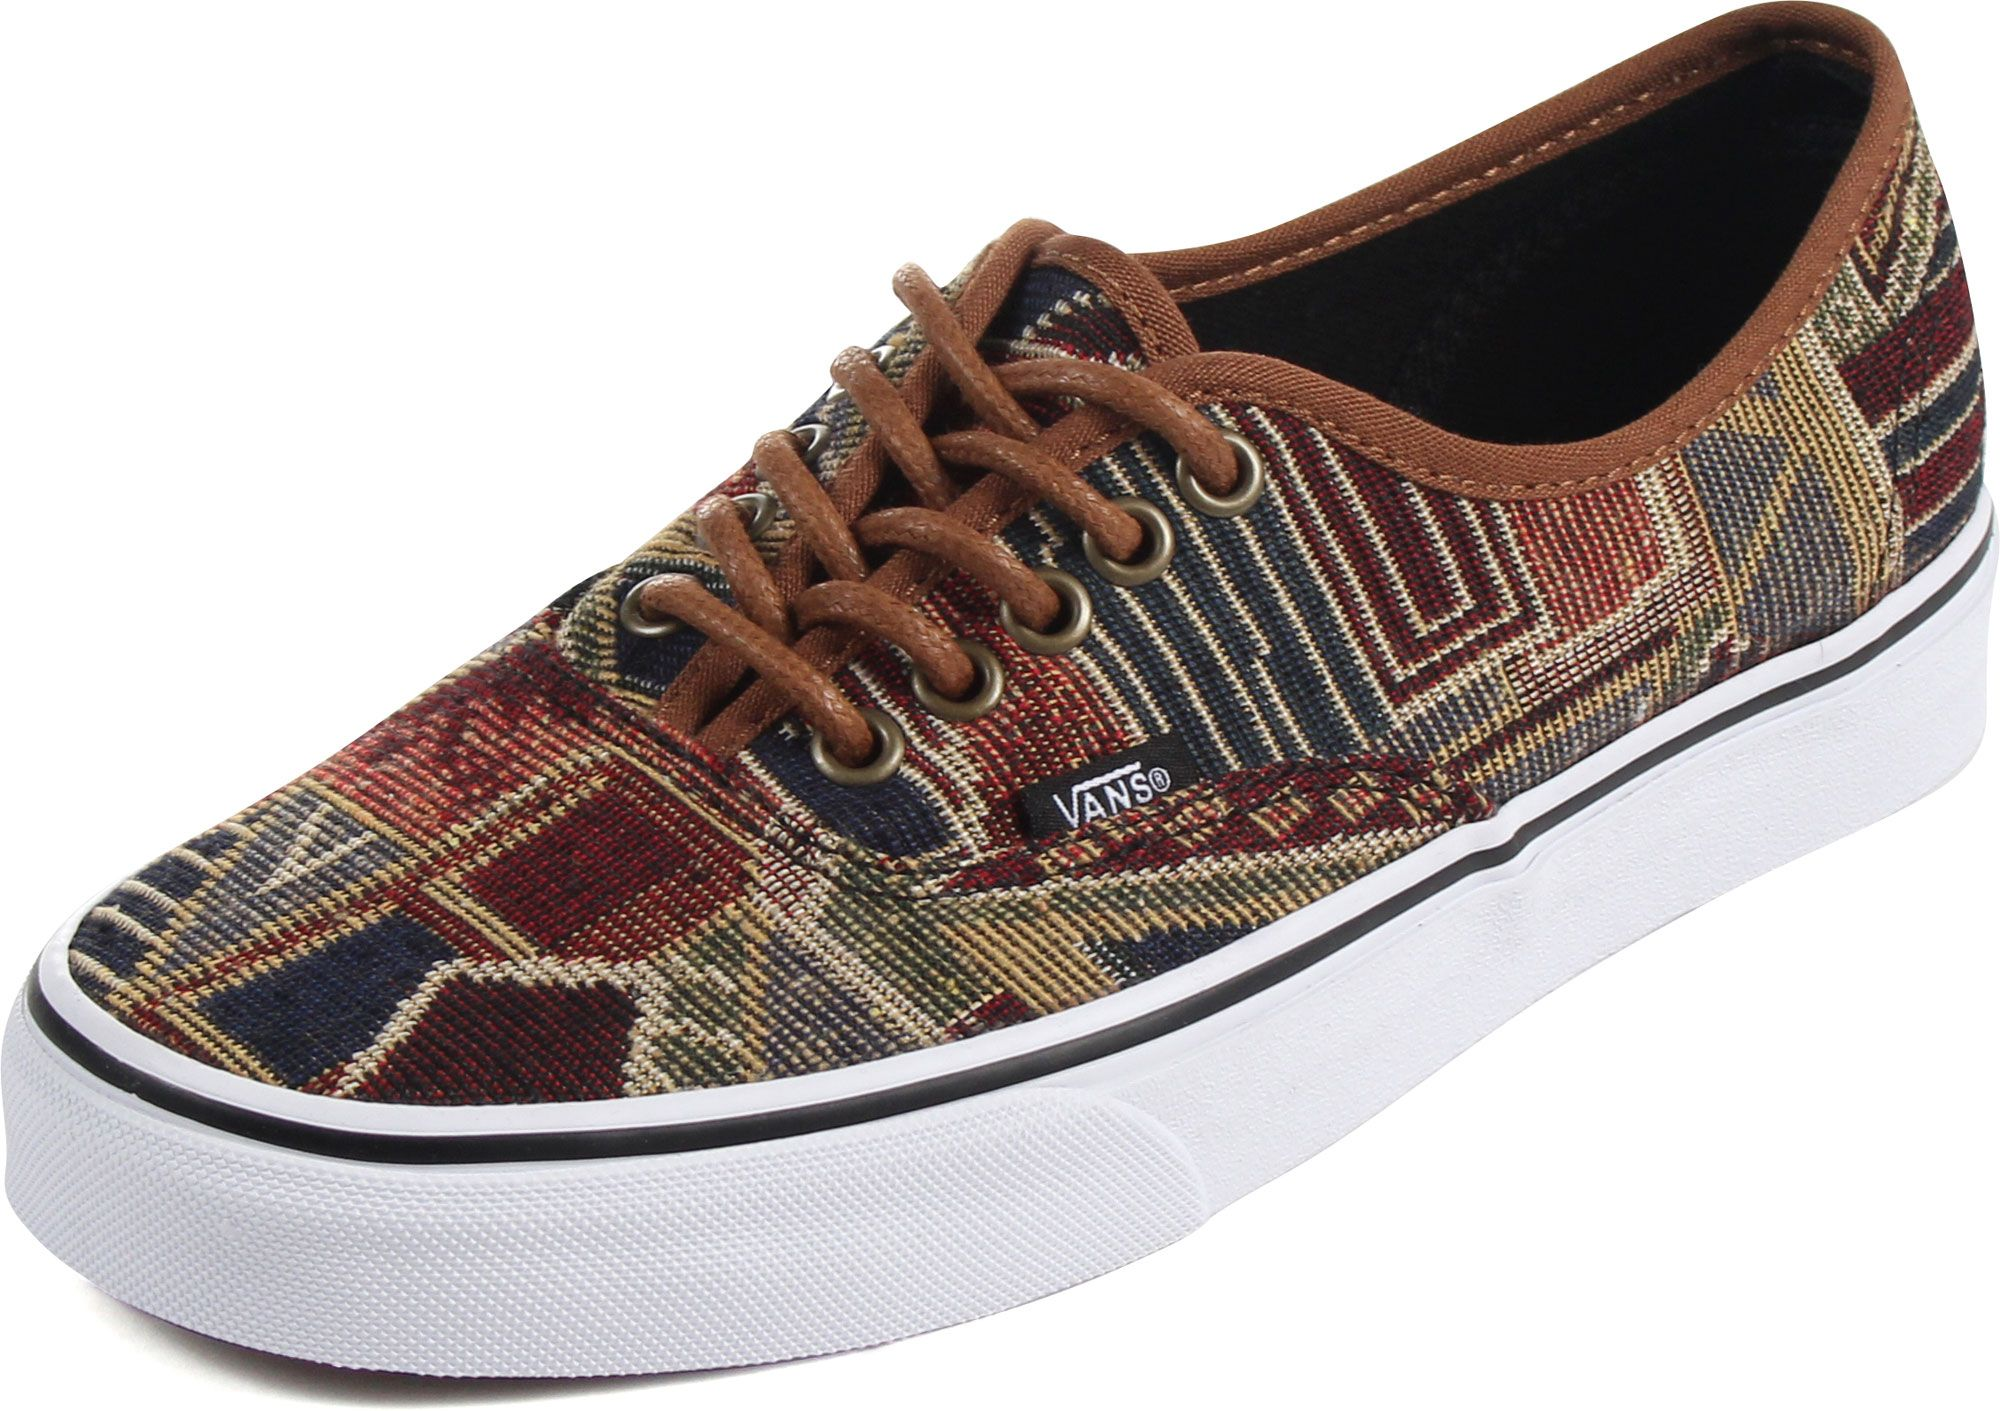 UK Online - Vans Authentic Sneakers Unisex Basses Beige (Van Doren / Poinsettia / Classic White)